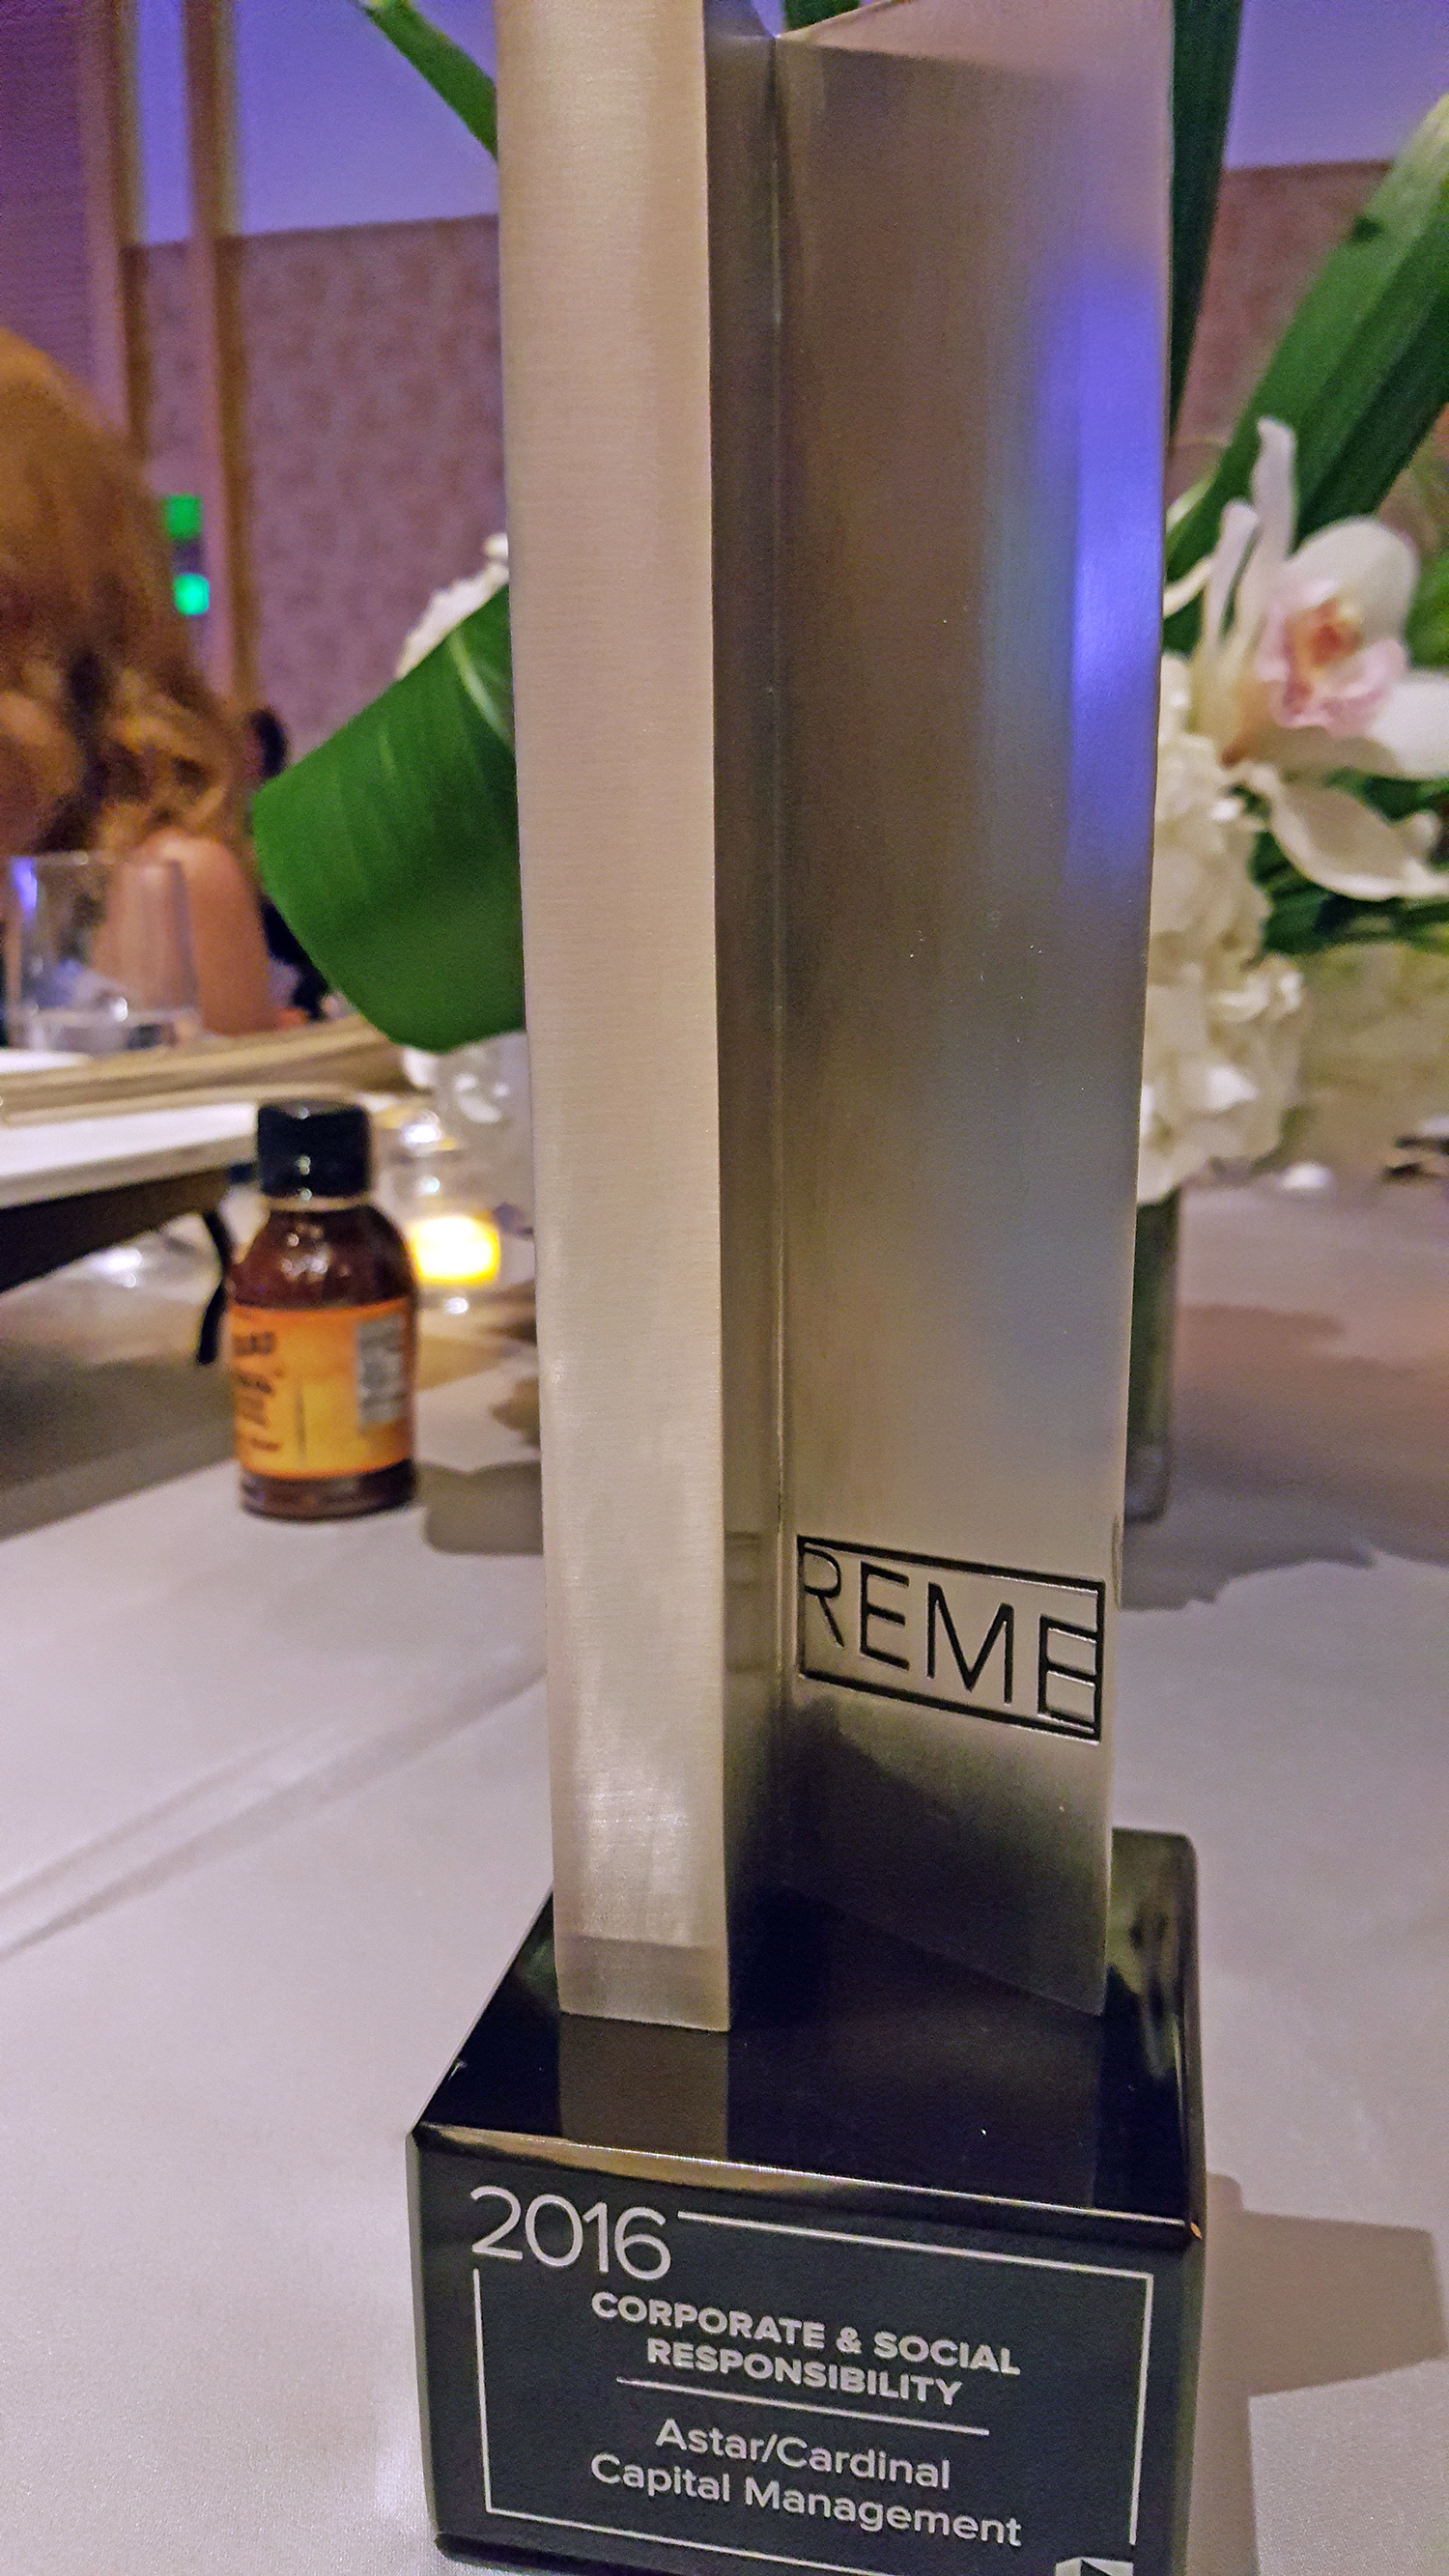 2016 REME Corporate and Social Responsibility Award